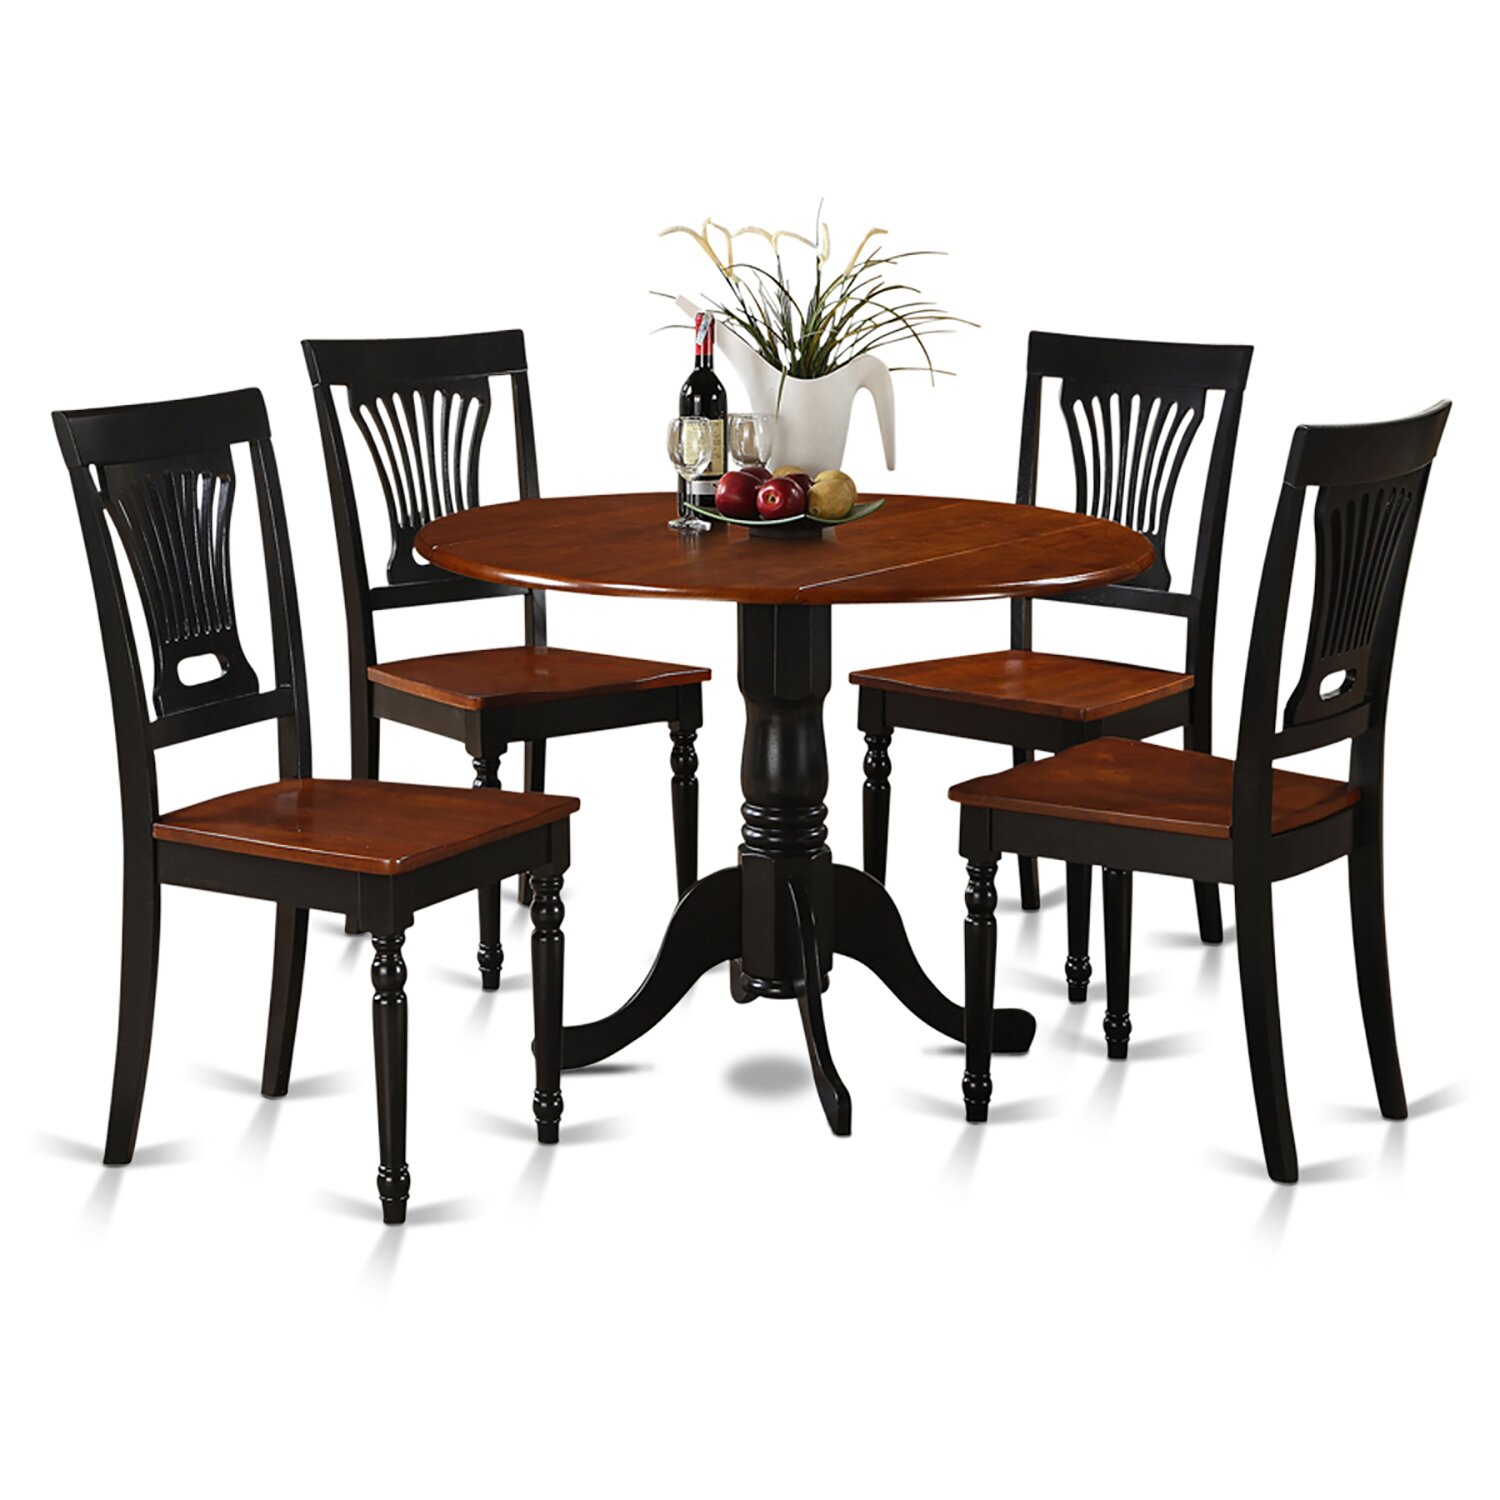 Wooden importers dublin 5 piece dining set reviews wayfair for Small kitchen table sets for 4